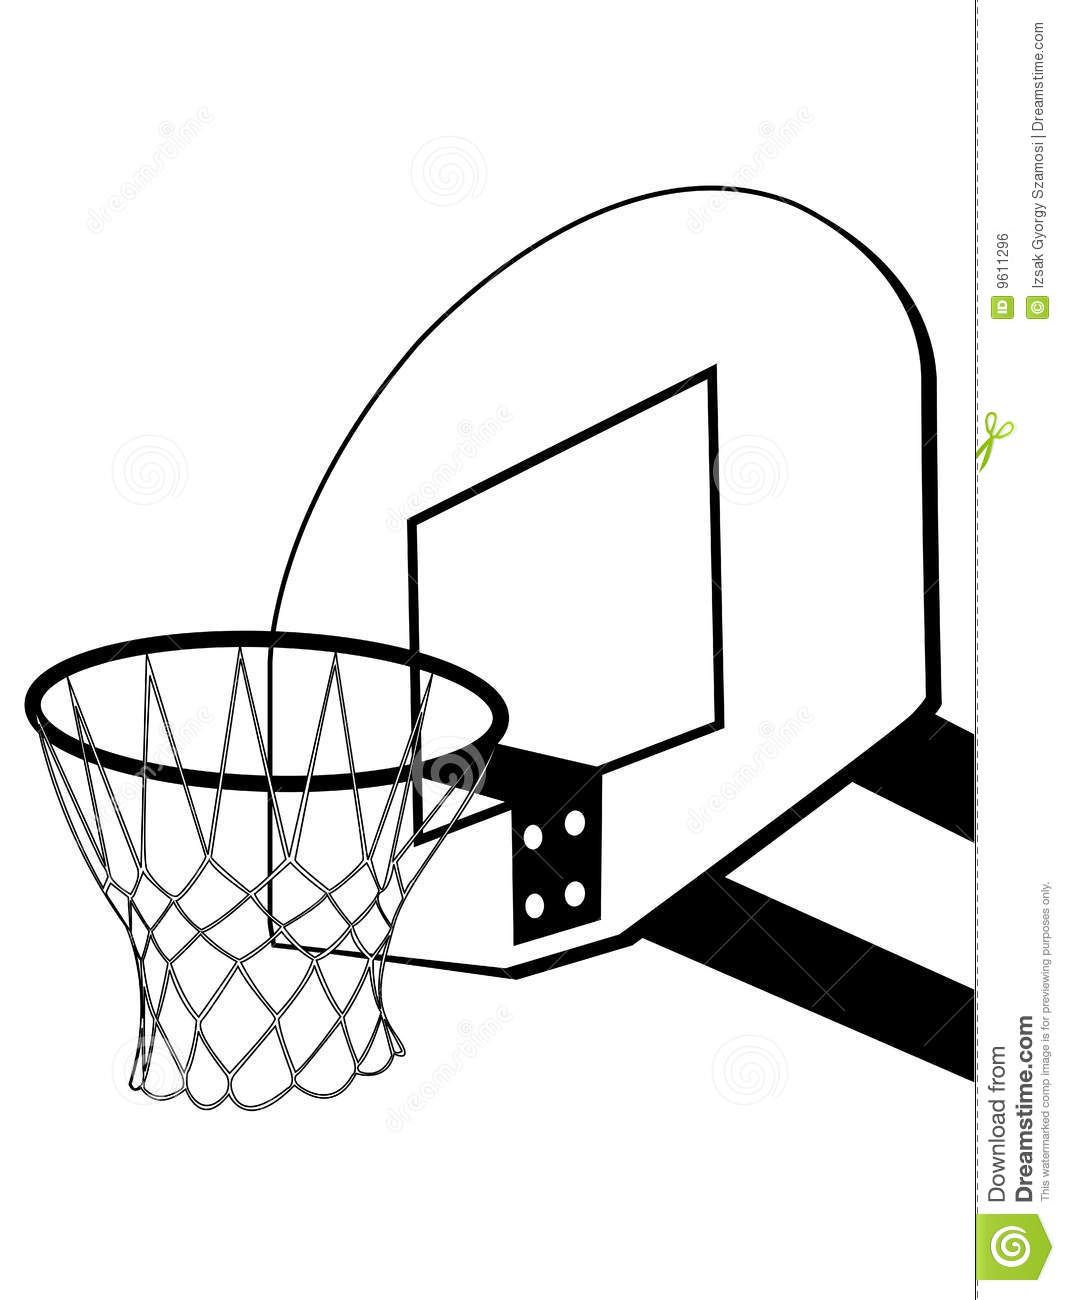 Basketball Hoop Decals Google Search Basketball Backboard Basketball Hoop Ohio State Basketball